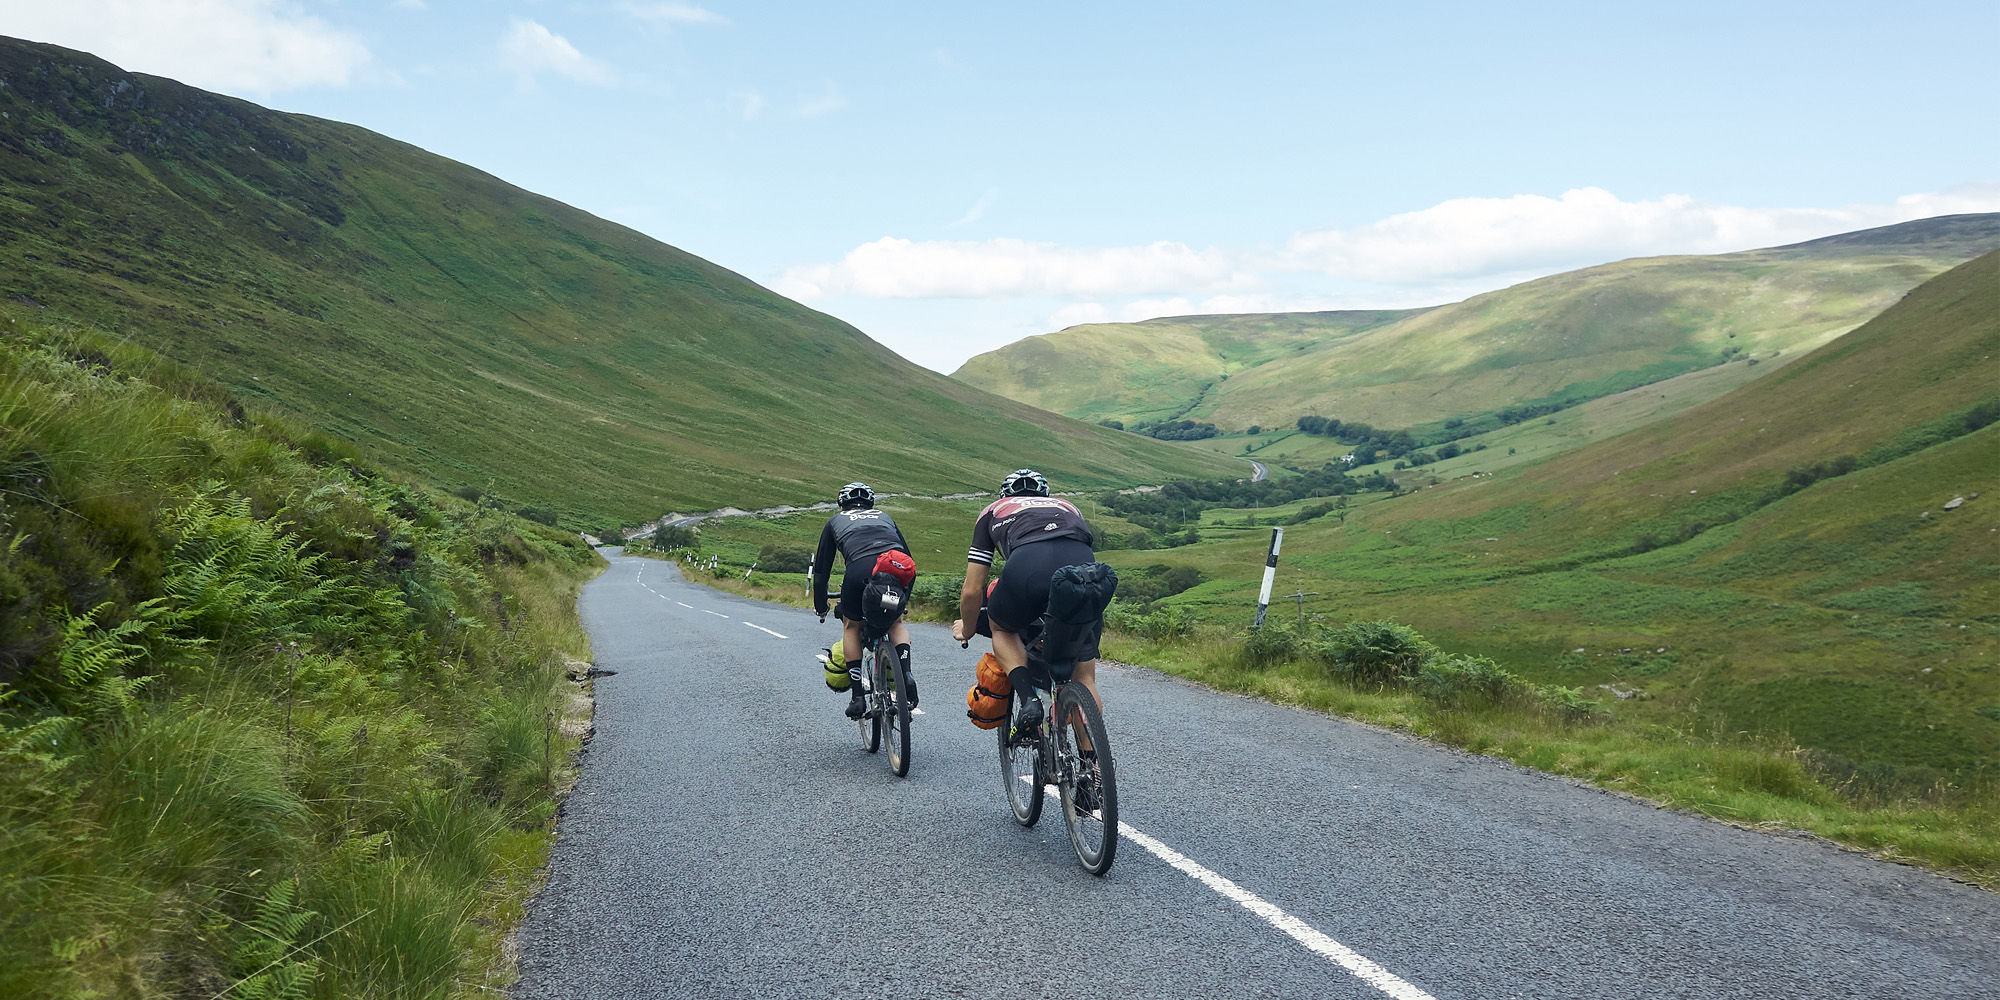 8bar cyclists on the road bikepacking mountains